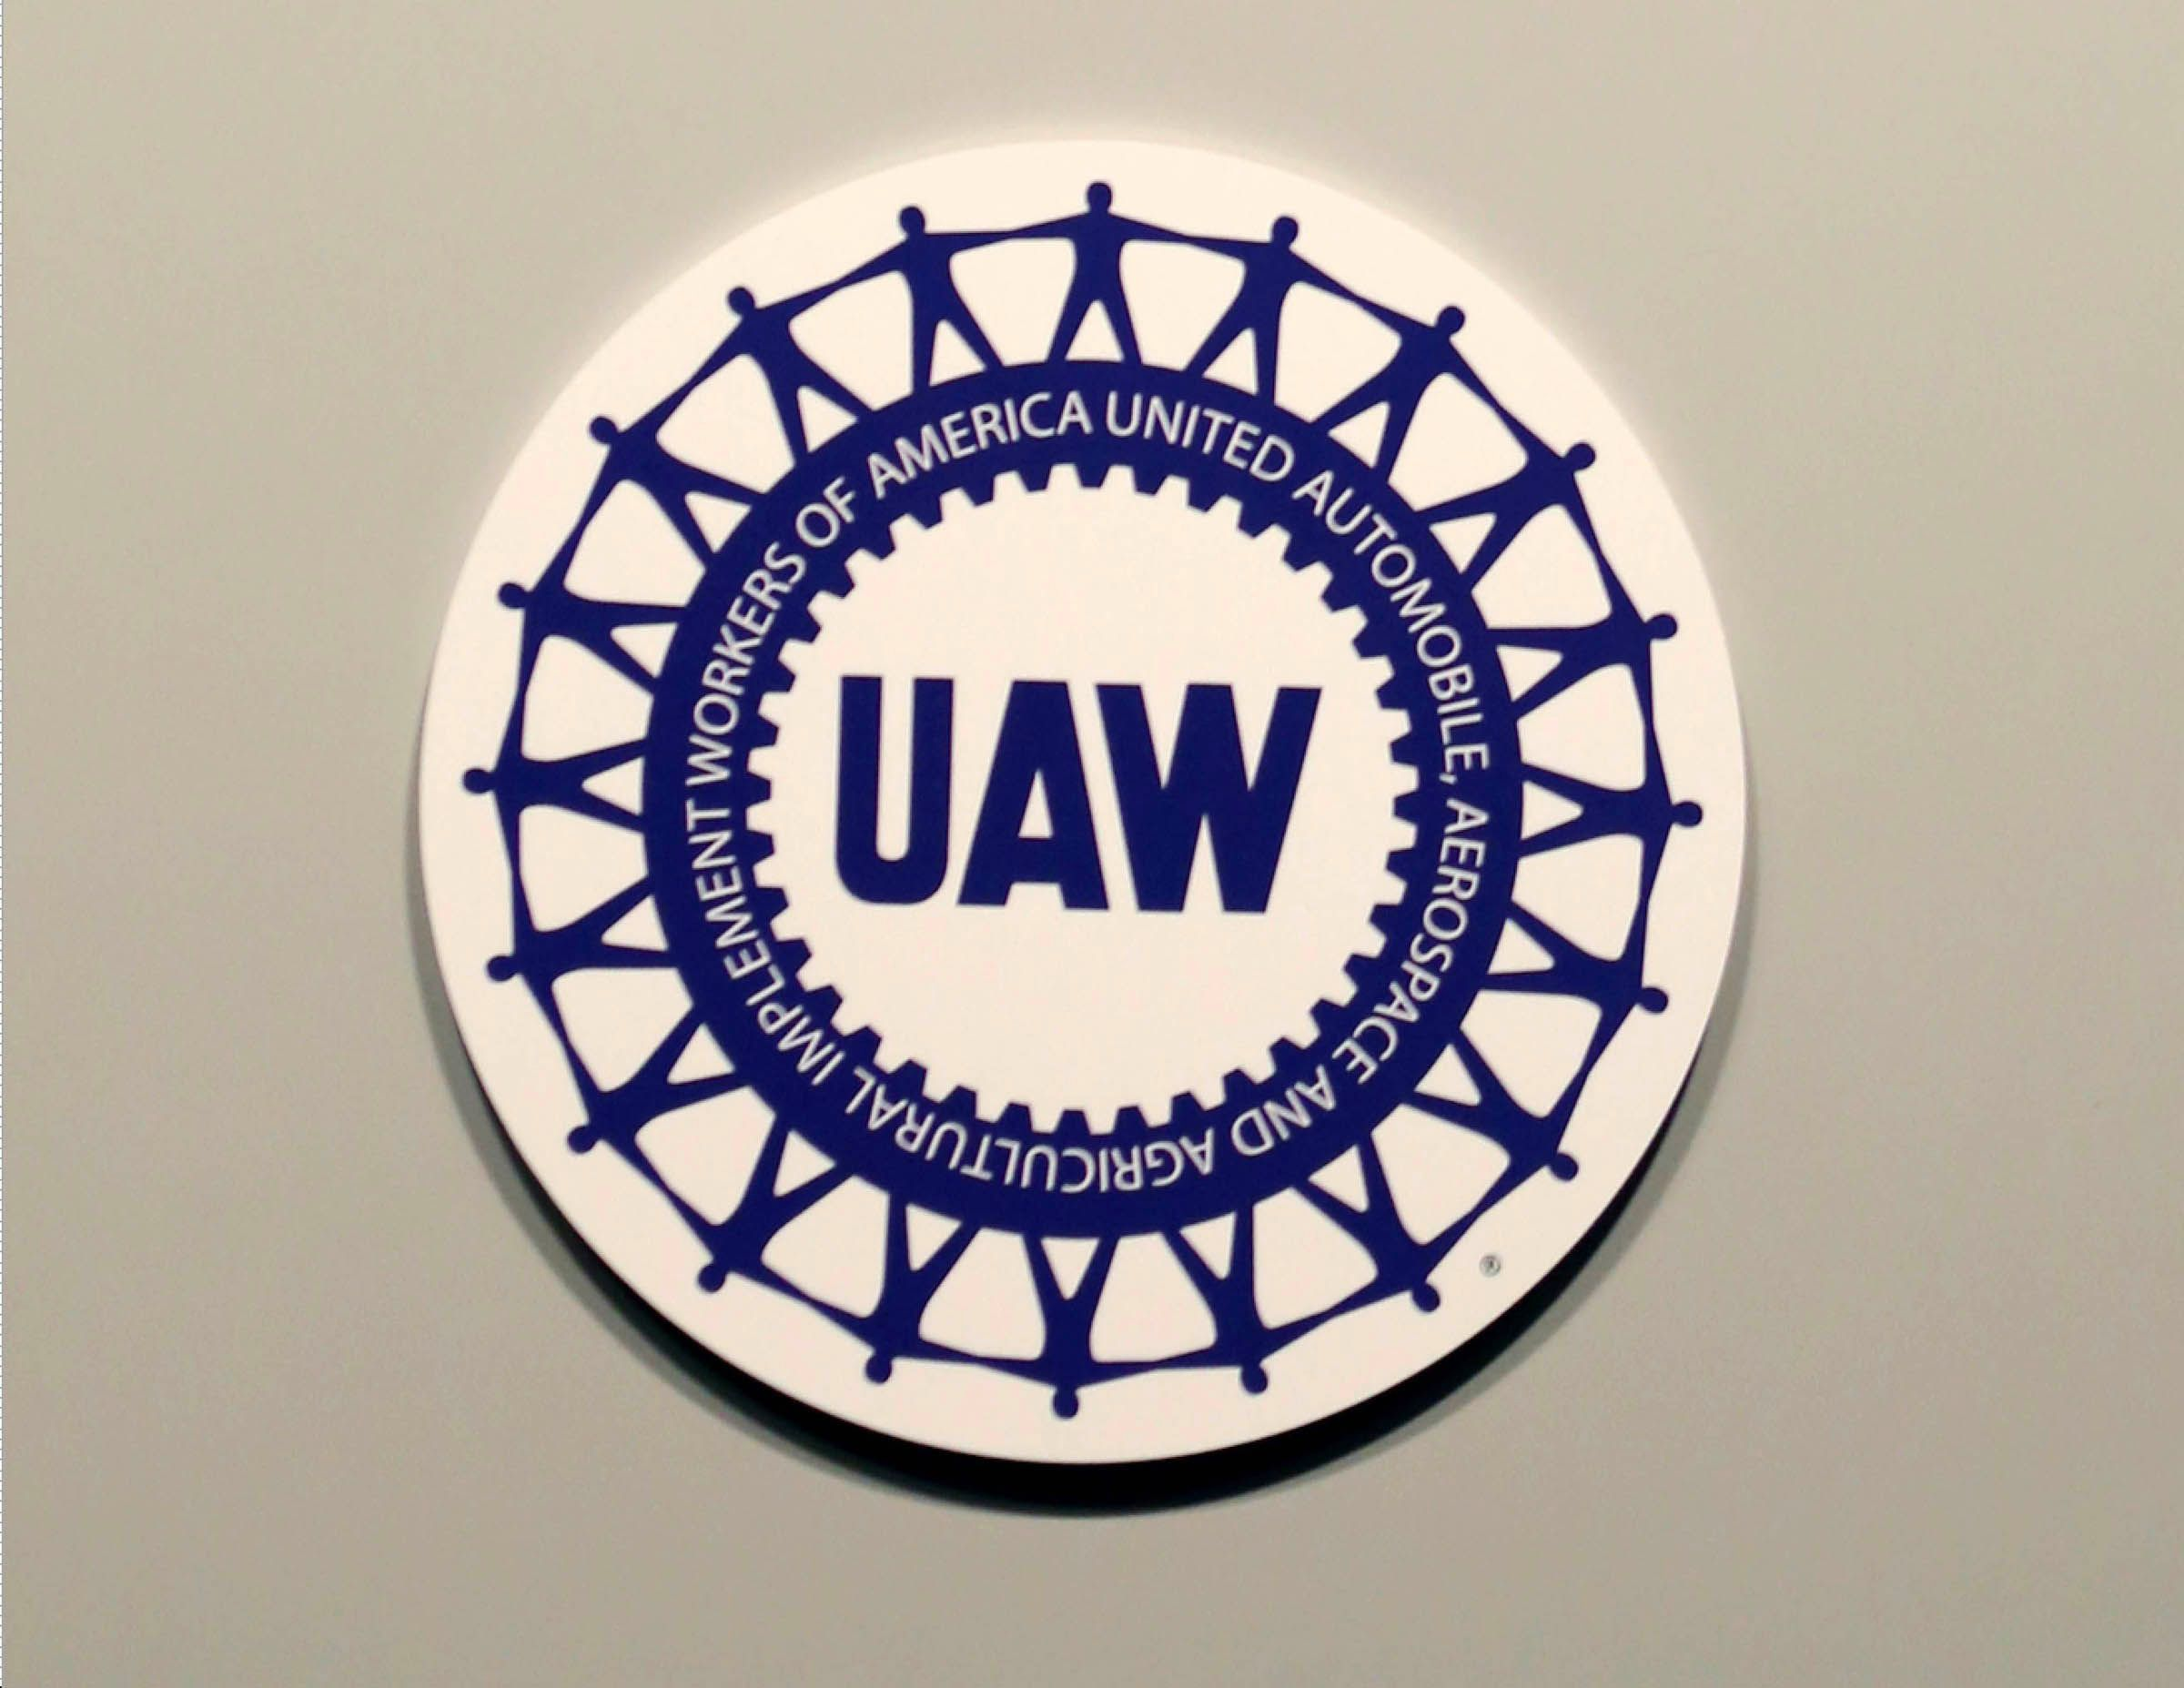 Director of UAW Region 5, successor to union chief Jones, charged in corruption probe